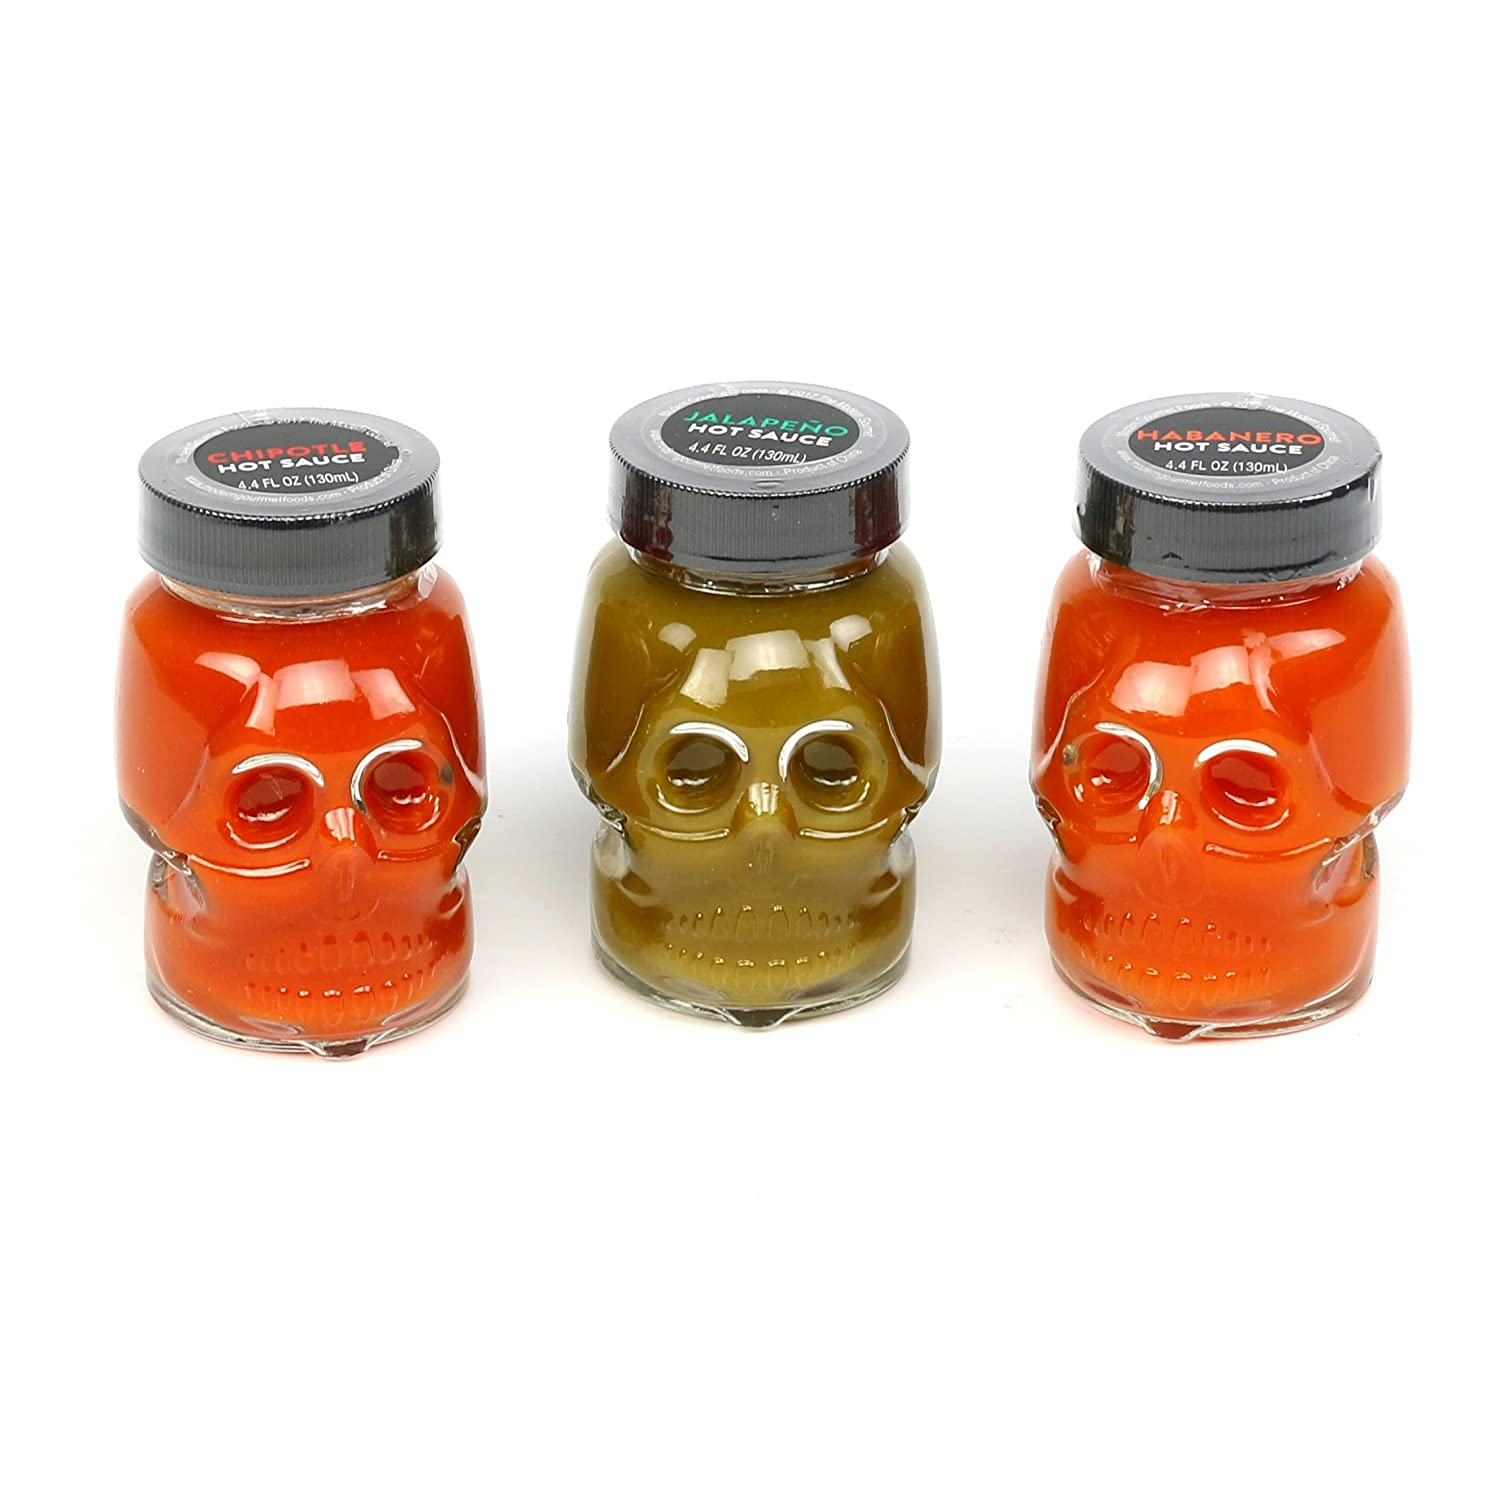 Gourmet Hot Sauce Mini Skulls - Set of 3 | Chipotle, Jalapeño, & Habanero for adding Spicy Heat and Flavor to Tacos, Pizza, Eggs, Chicken, Burgers, and more! (4.4 oz each)